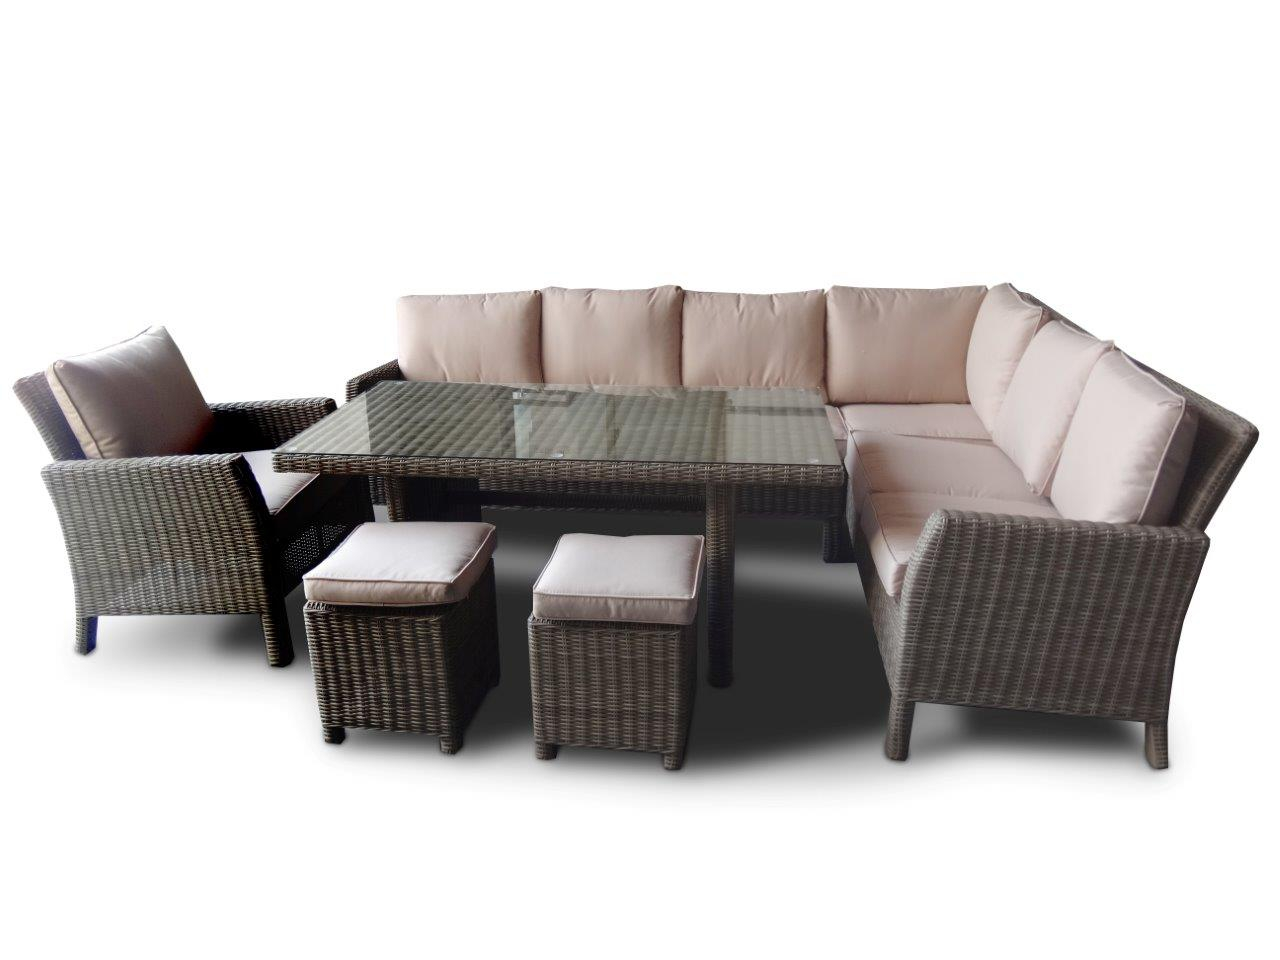 rattan gartentisch rattan sitzgruppe rattan ecklounge. Black Bedroom Furniture Sets. Home Design Ideas